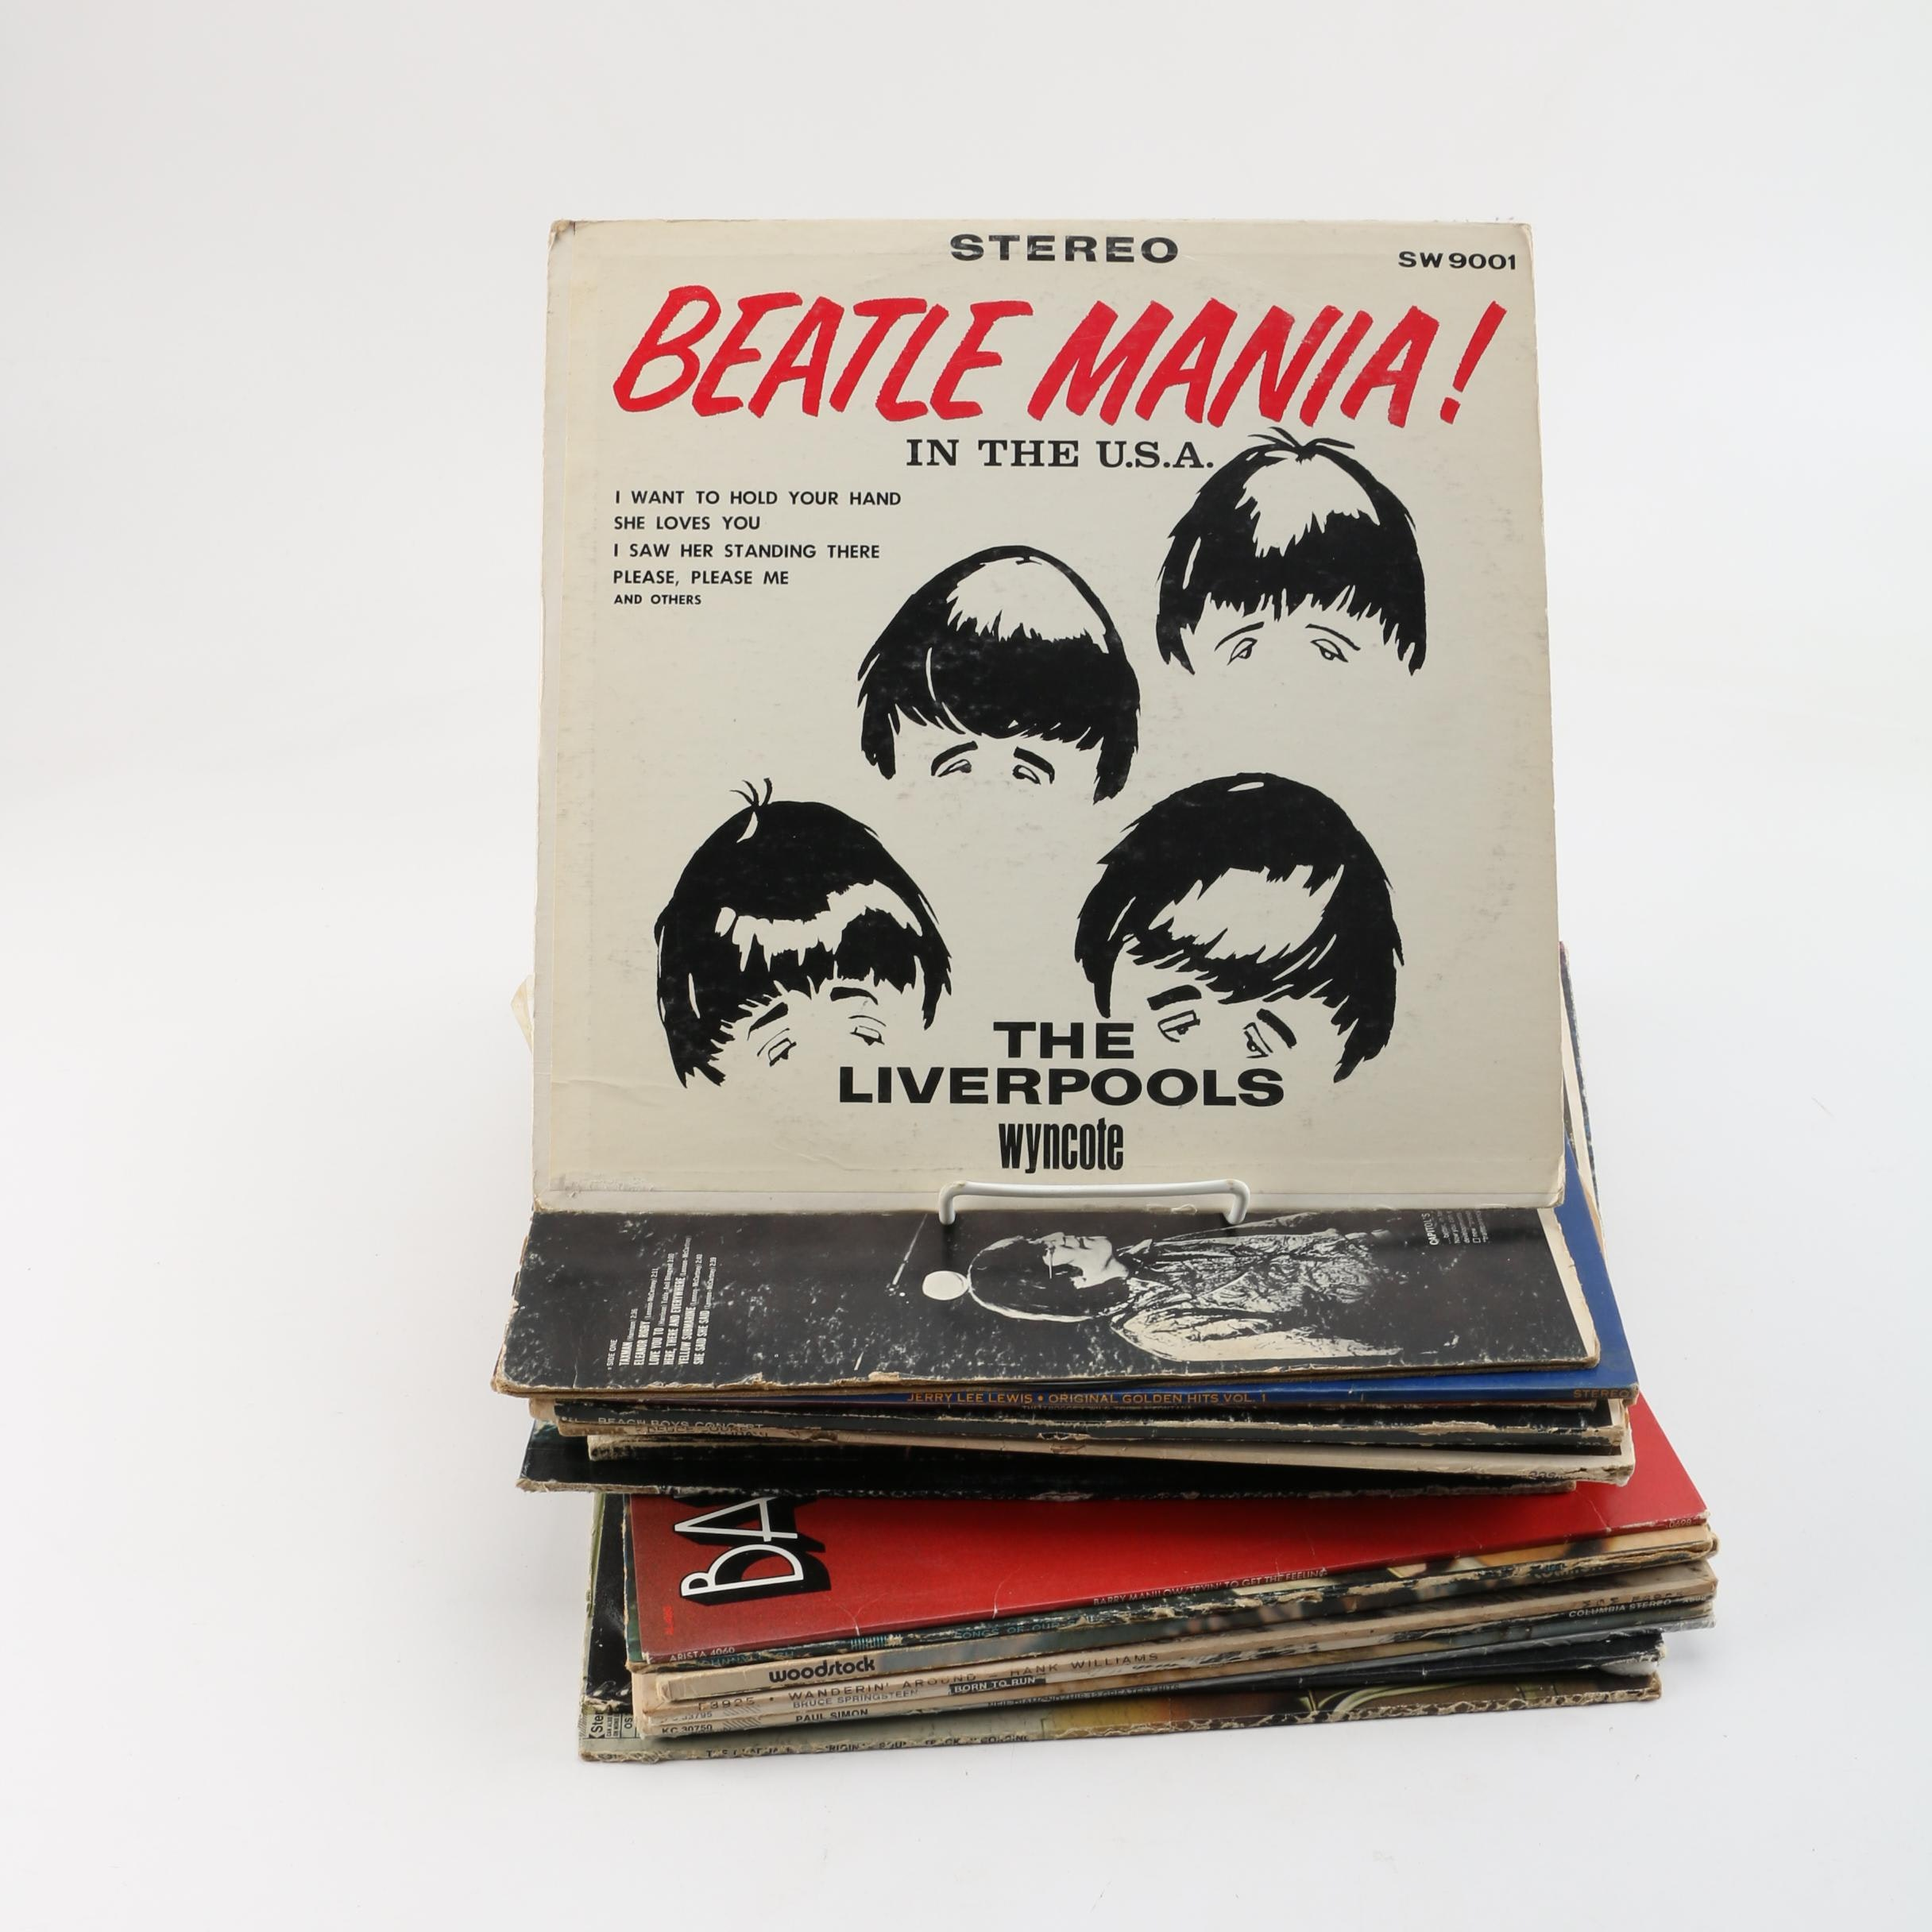 The Beatles, The Beach Boys, Johnny Cash, and Other LPs